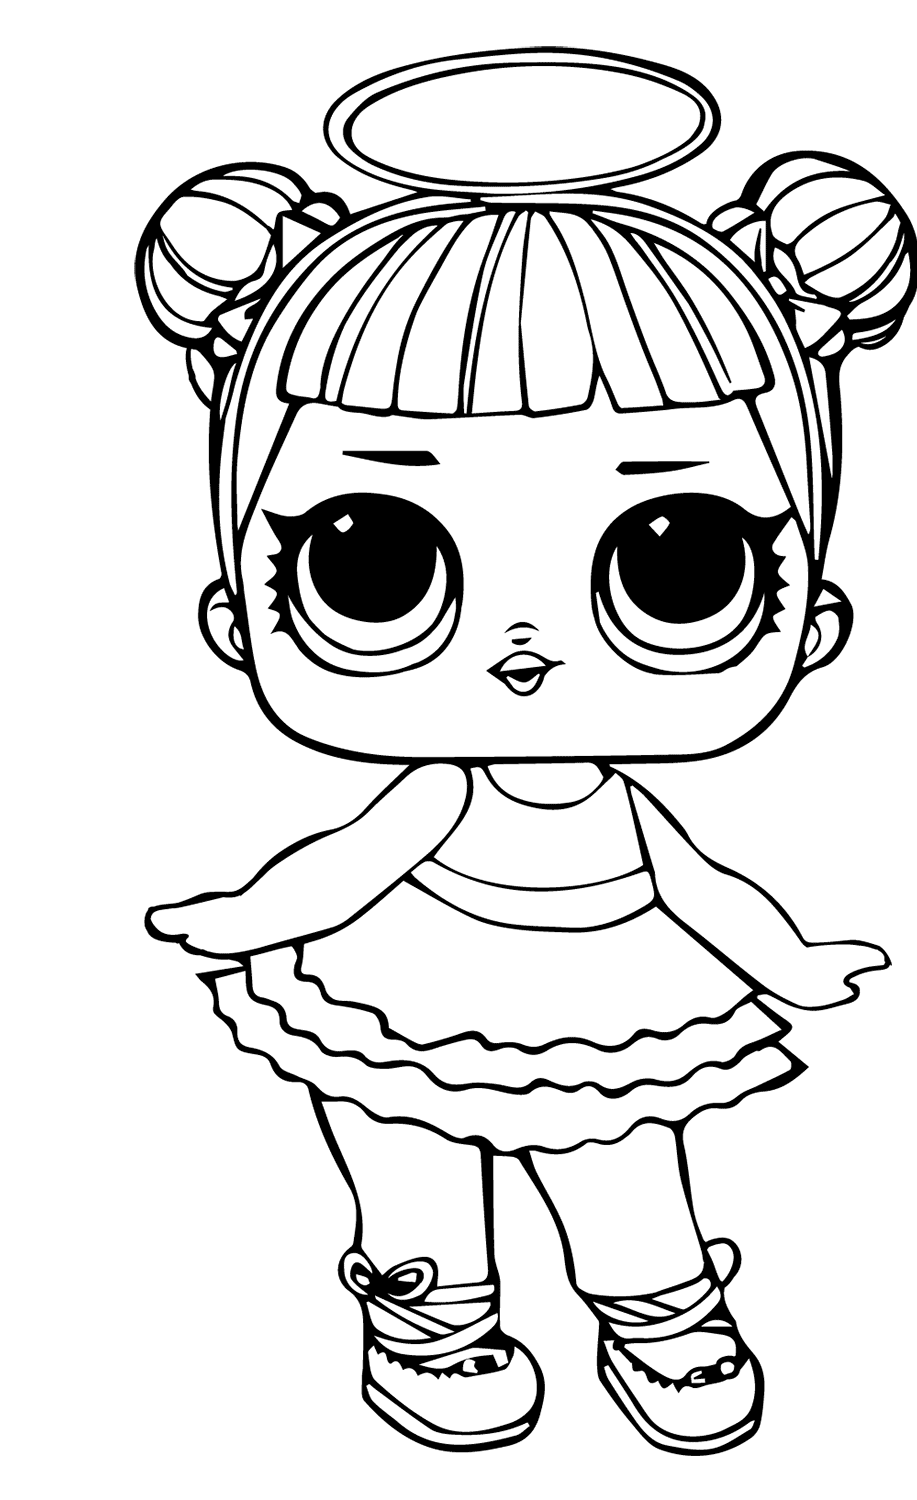 doll colouring pages doll coloring pages best coloring pages for kids colouring pages doll